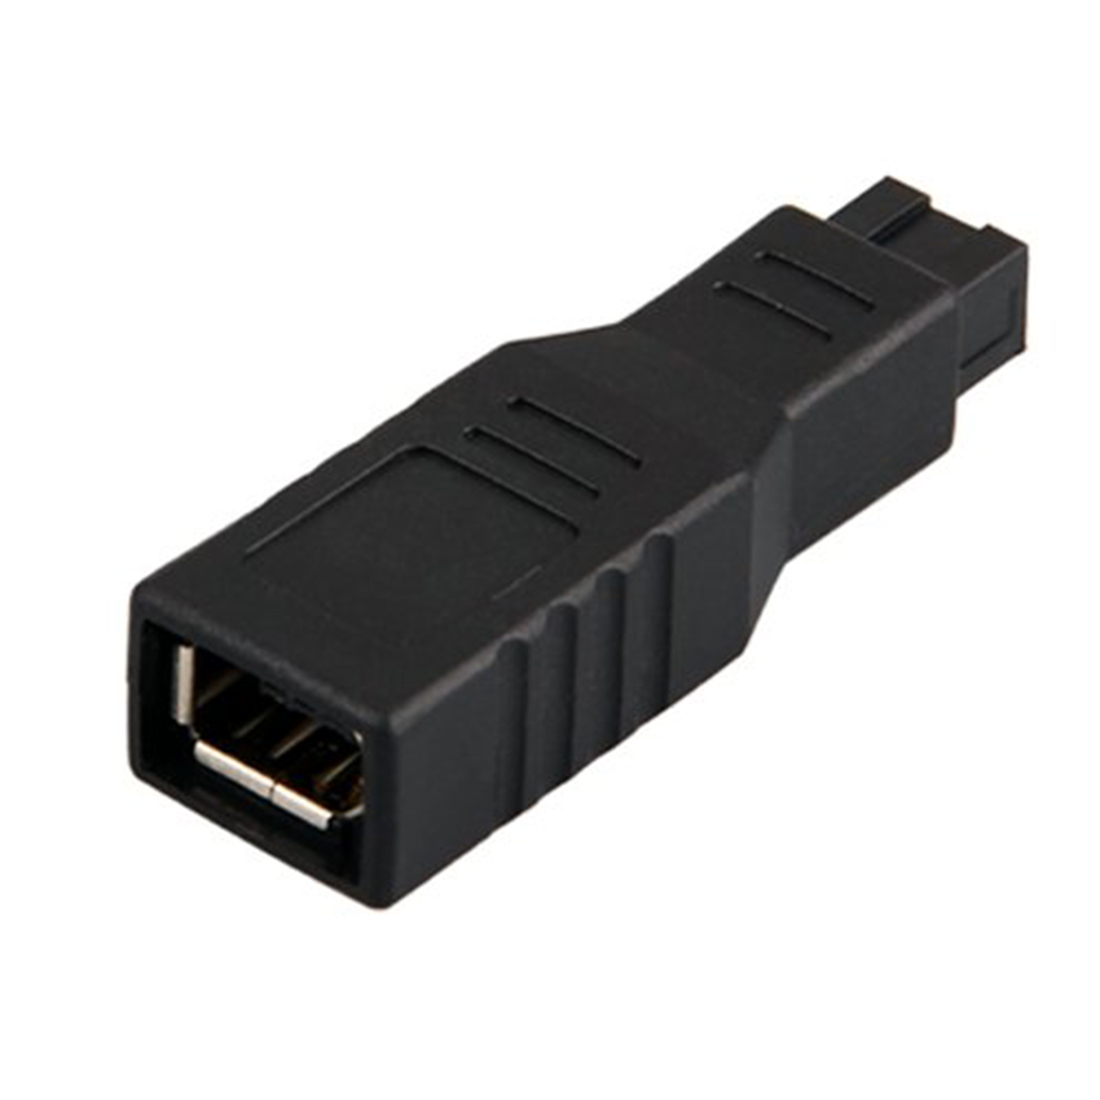 New Top Quality Black Firewire 400 to 800 Adapter - 6 pin to 9 pin Connector Wholesale louane paris